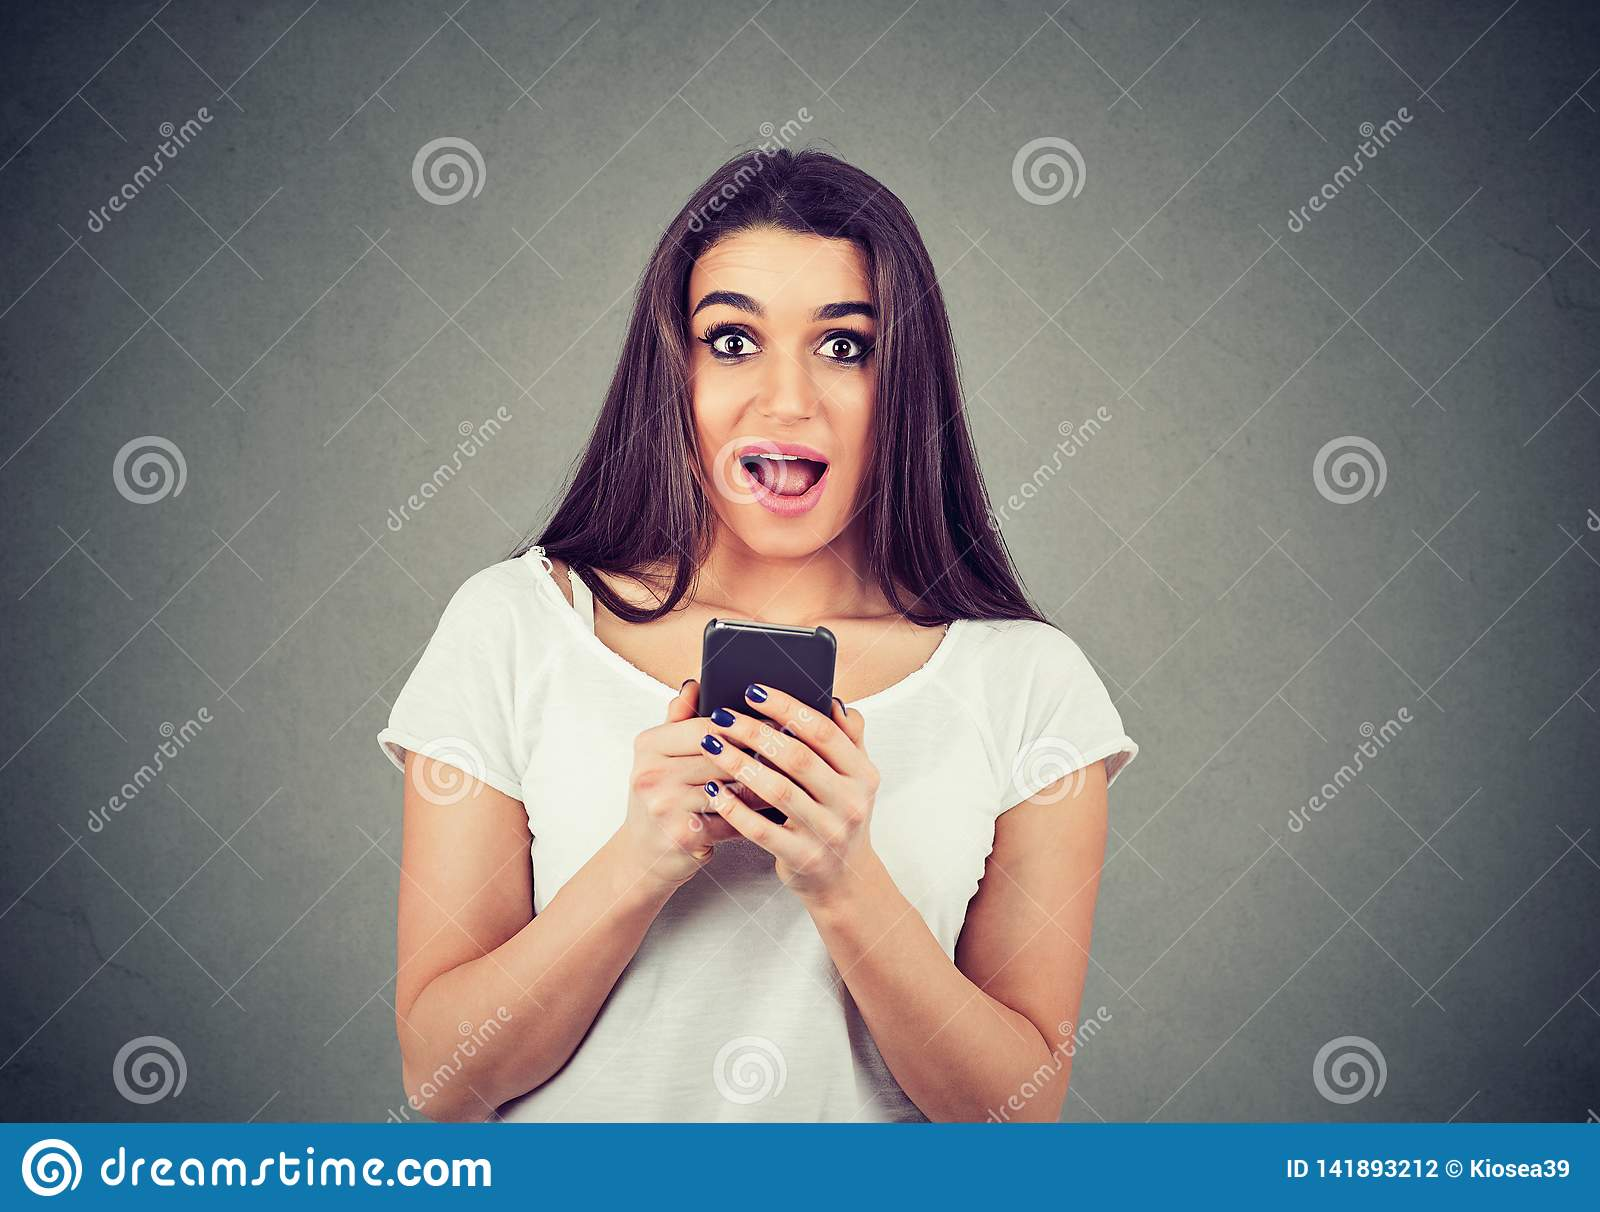 Portrait of a shocked young woman holding a mobile phone looking at camera